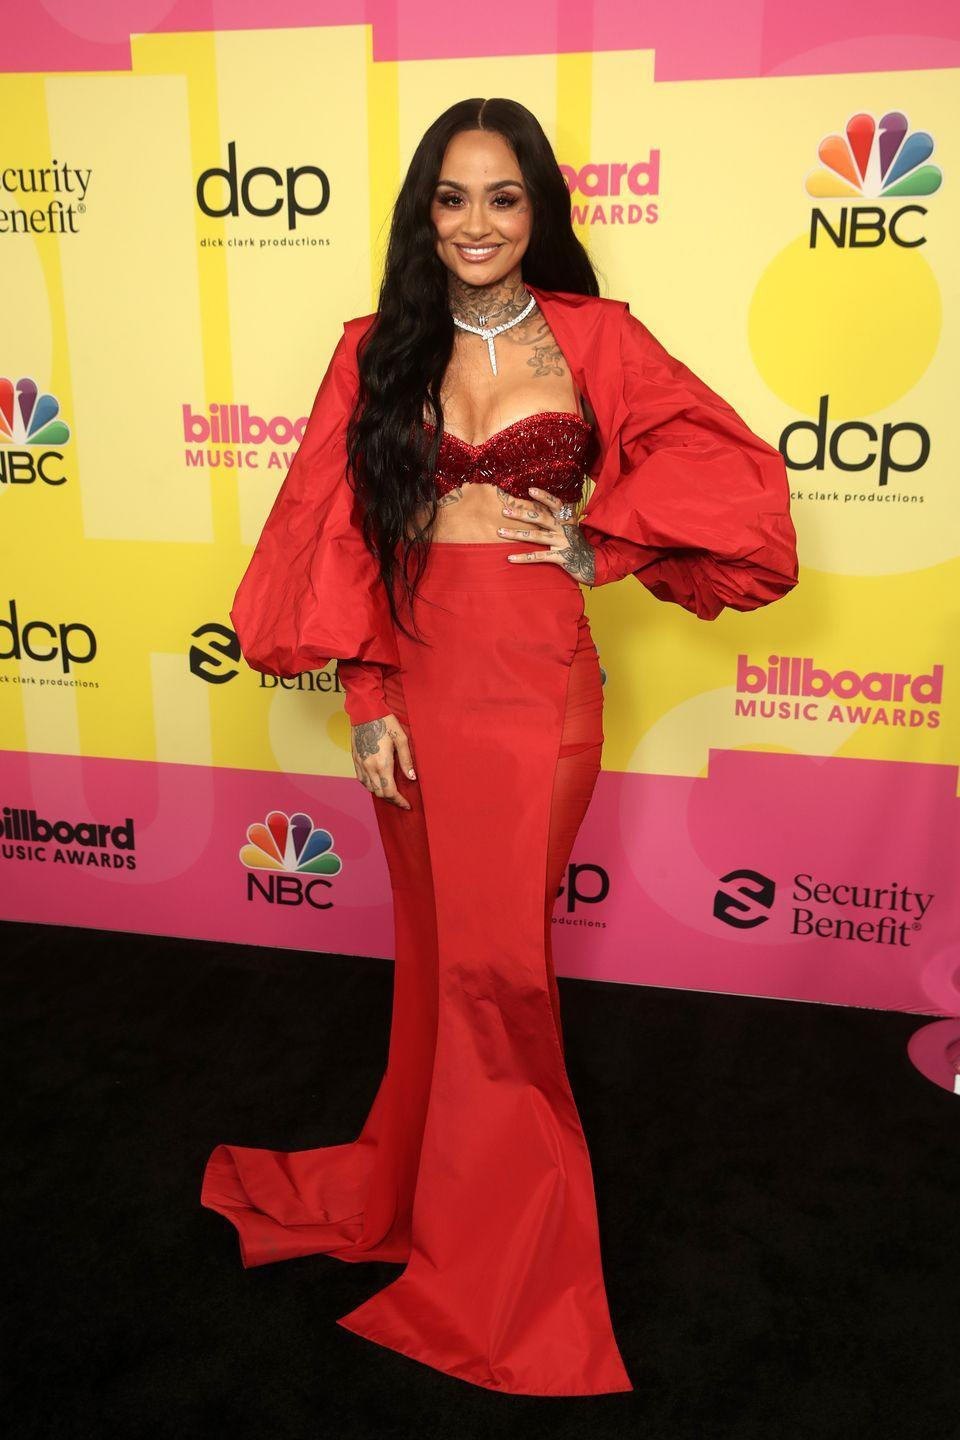 <p><strong>What: </strong>Tony Ward Couture<strong><u><strong><br></strong></u></strong></p><p><strong>Why: </strong>The West Coast singer kept in line with the unofficial taffeta theme by donning a red ensemble from Parisian atelier Tony Ward. Fitted with an embellished bustier, the hourglass silhouette features mutton-style sleeves and a floor-sweeping hem. Kehlani finished the look with a diamond tennis necklace. </p>